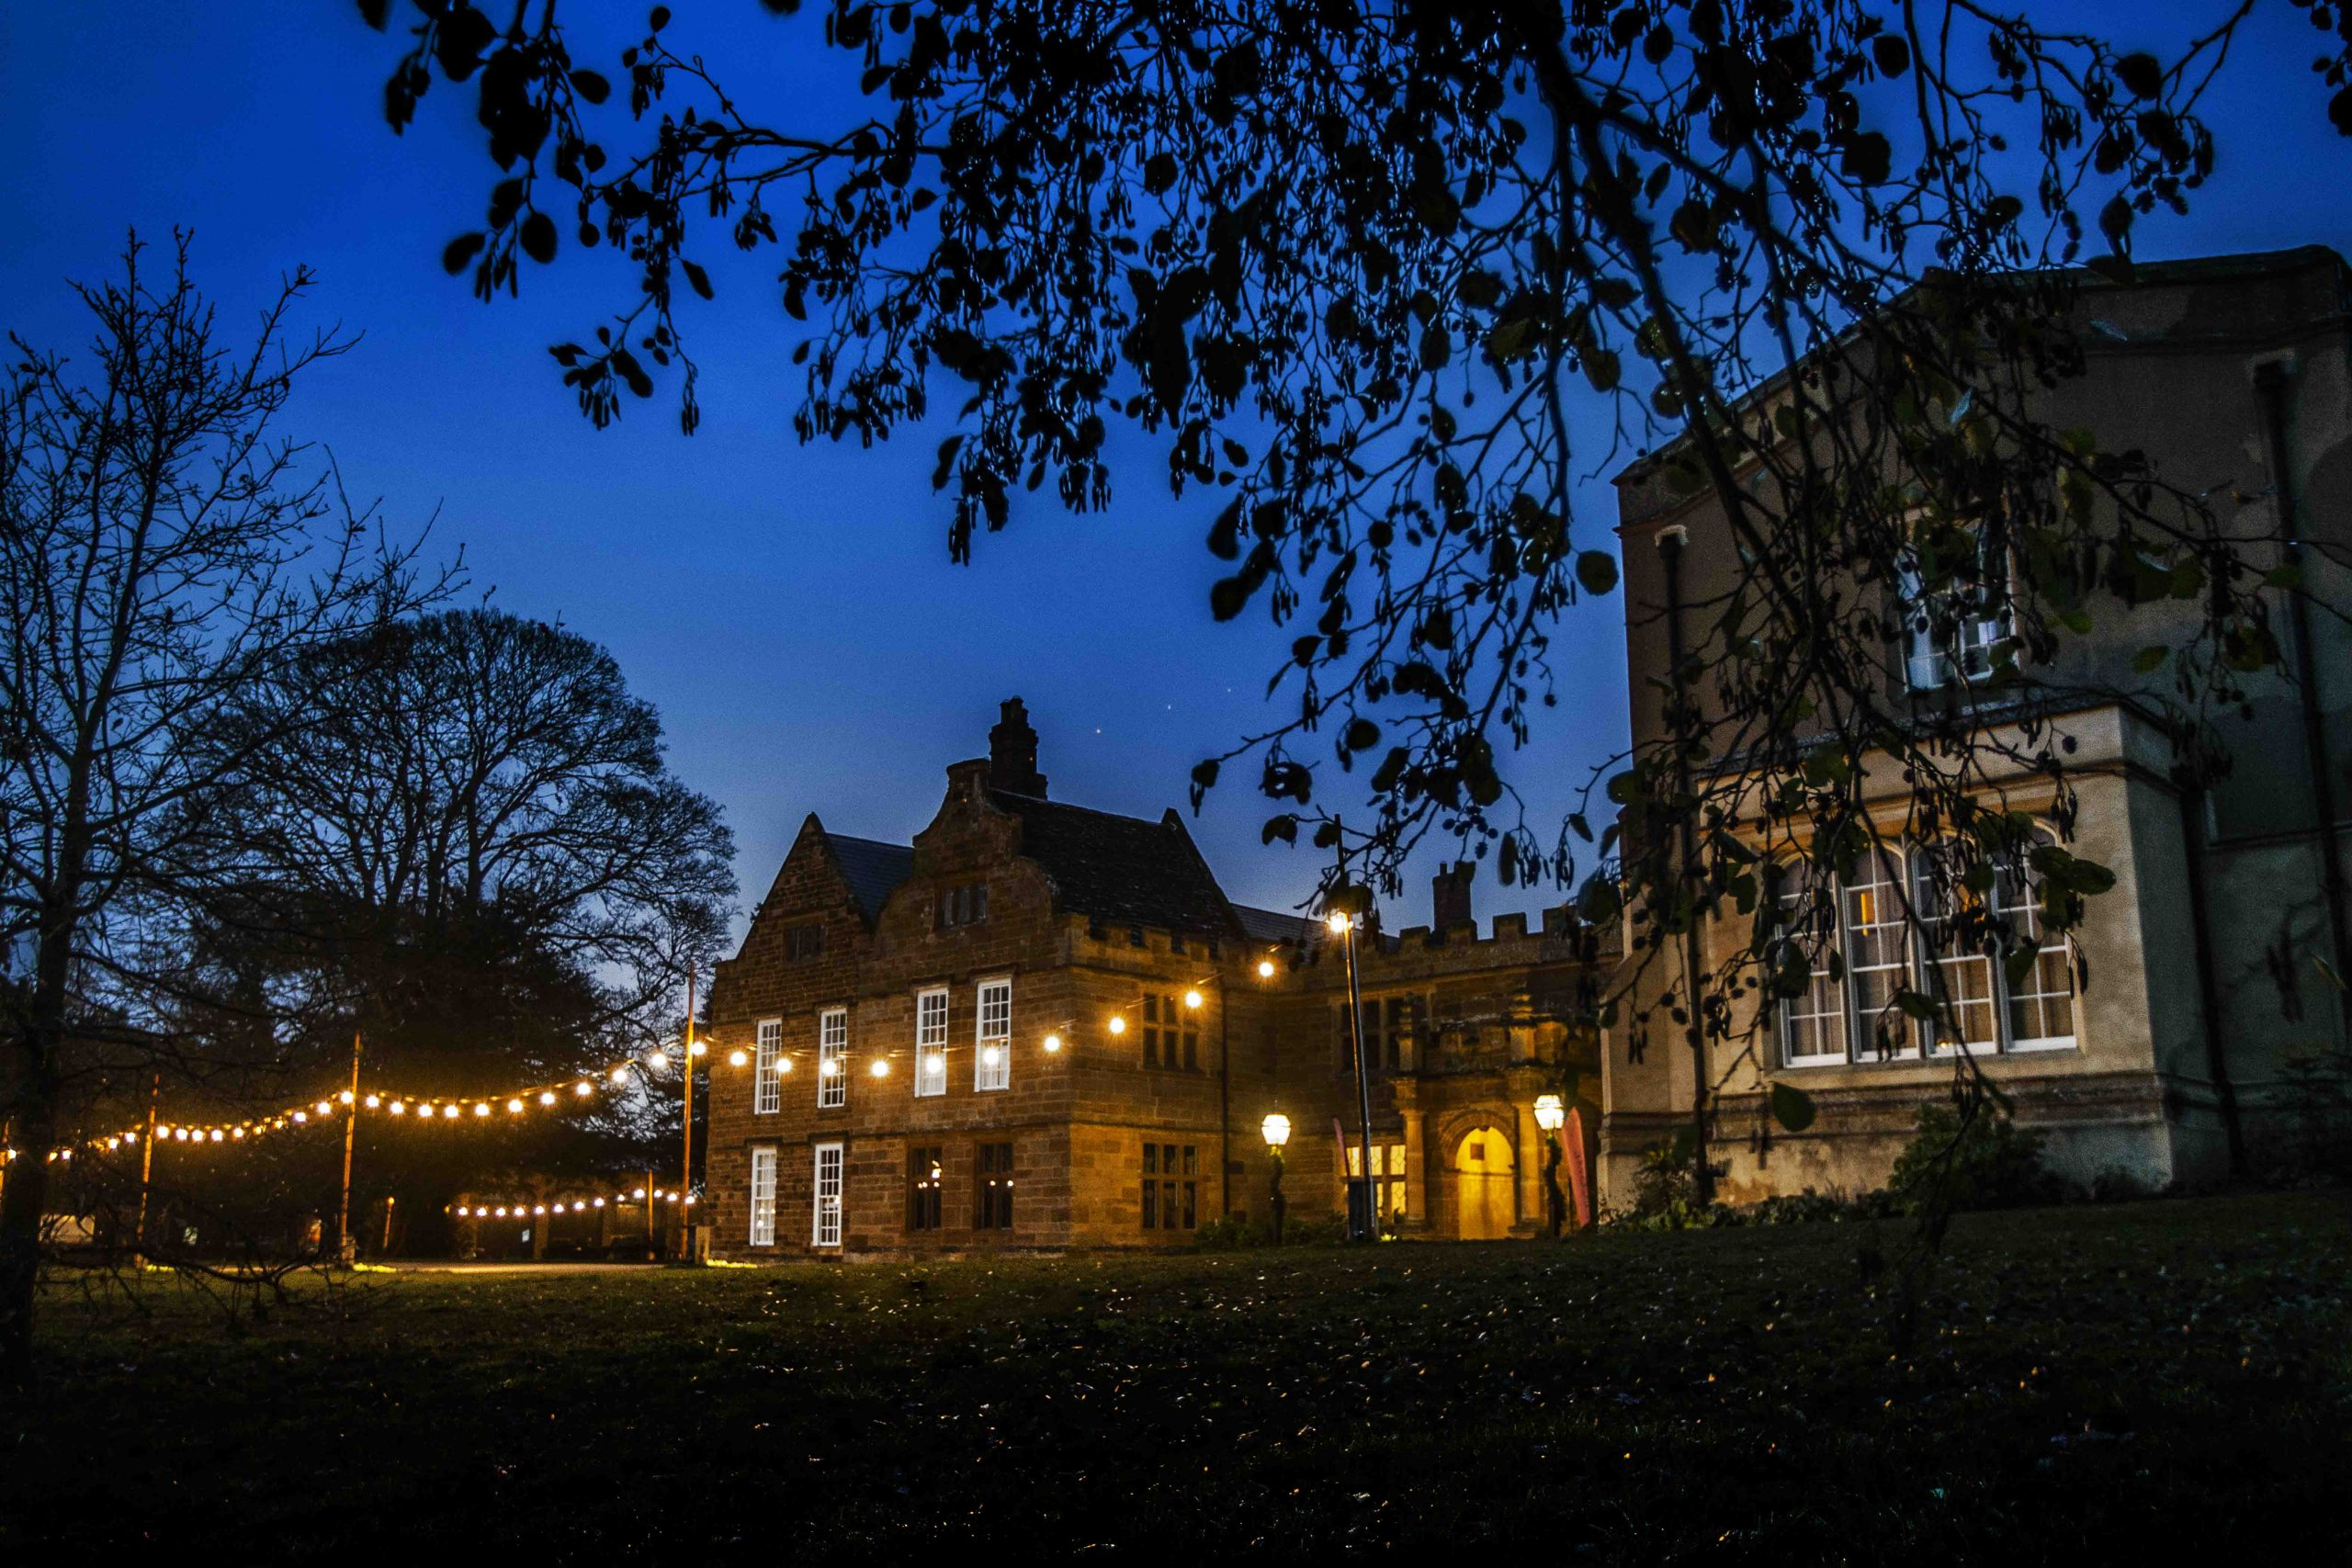 Delapre Abbey At Night